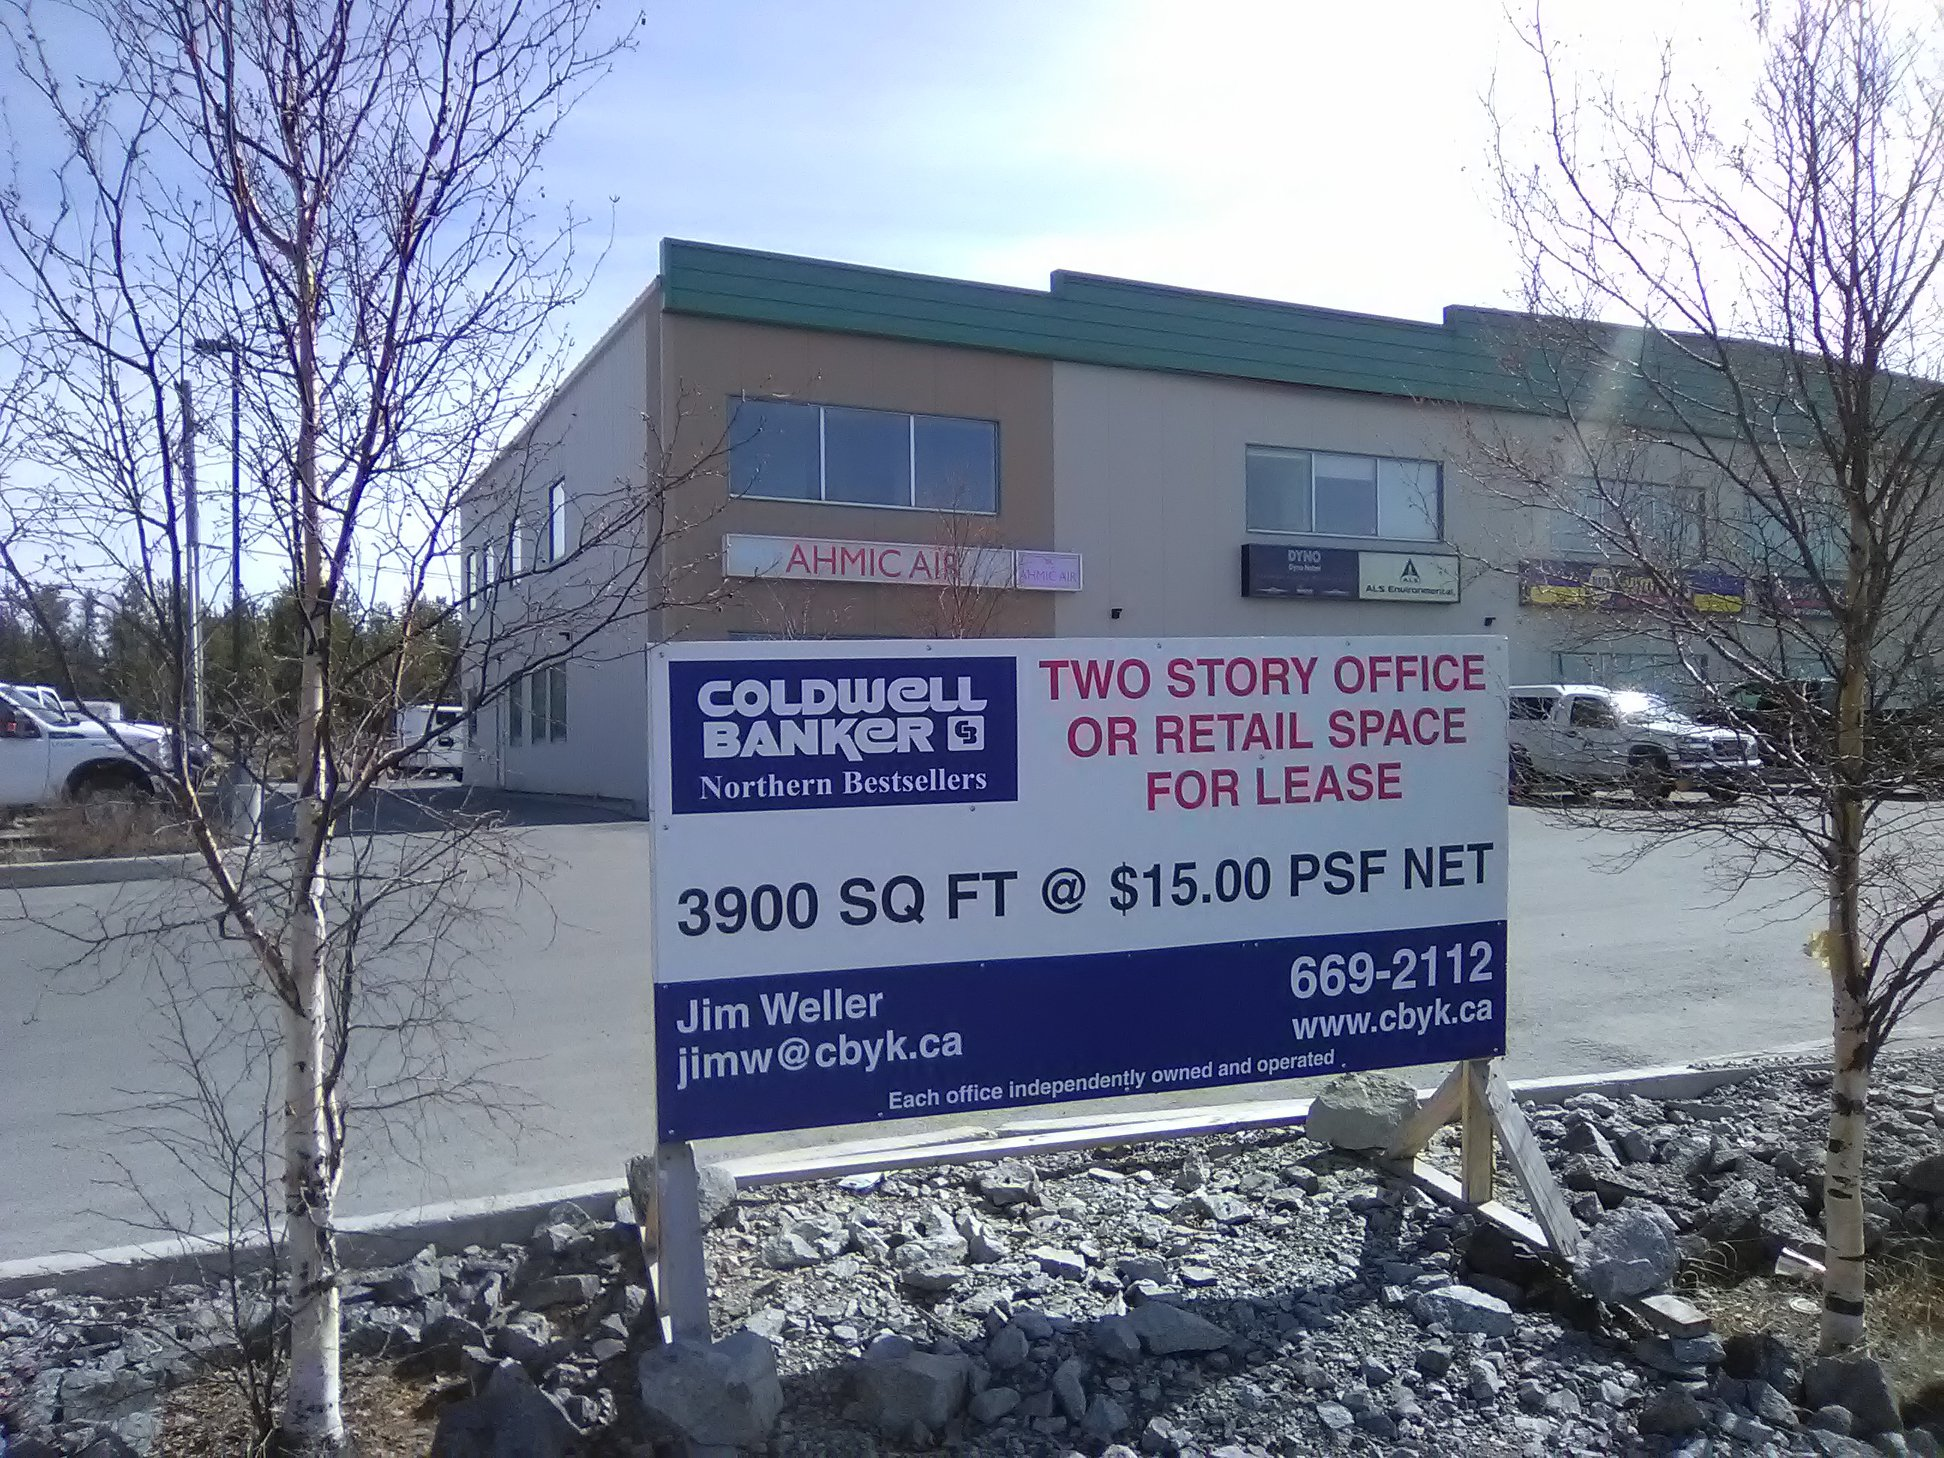 Coldwell Banker Commercial Real Estate Signage for Lease